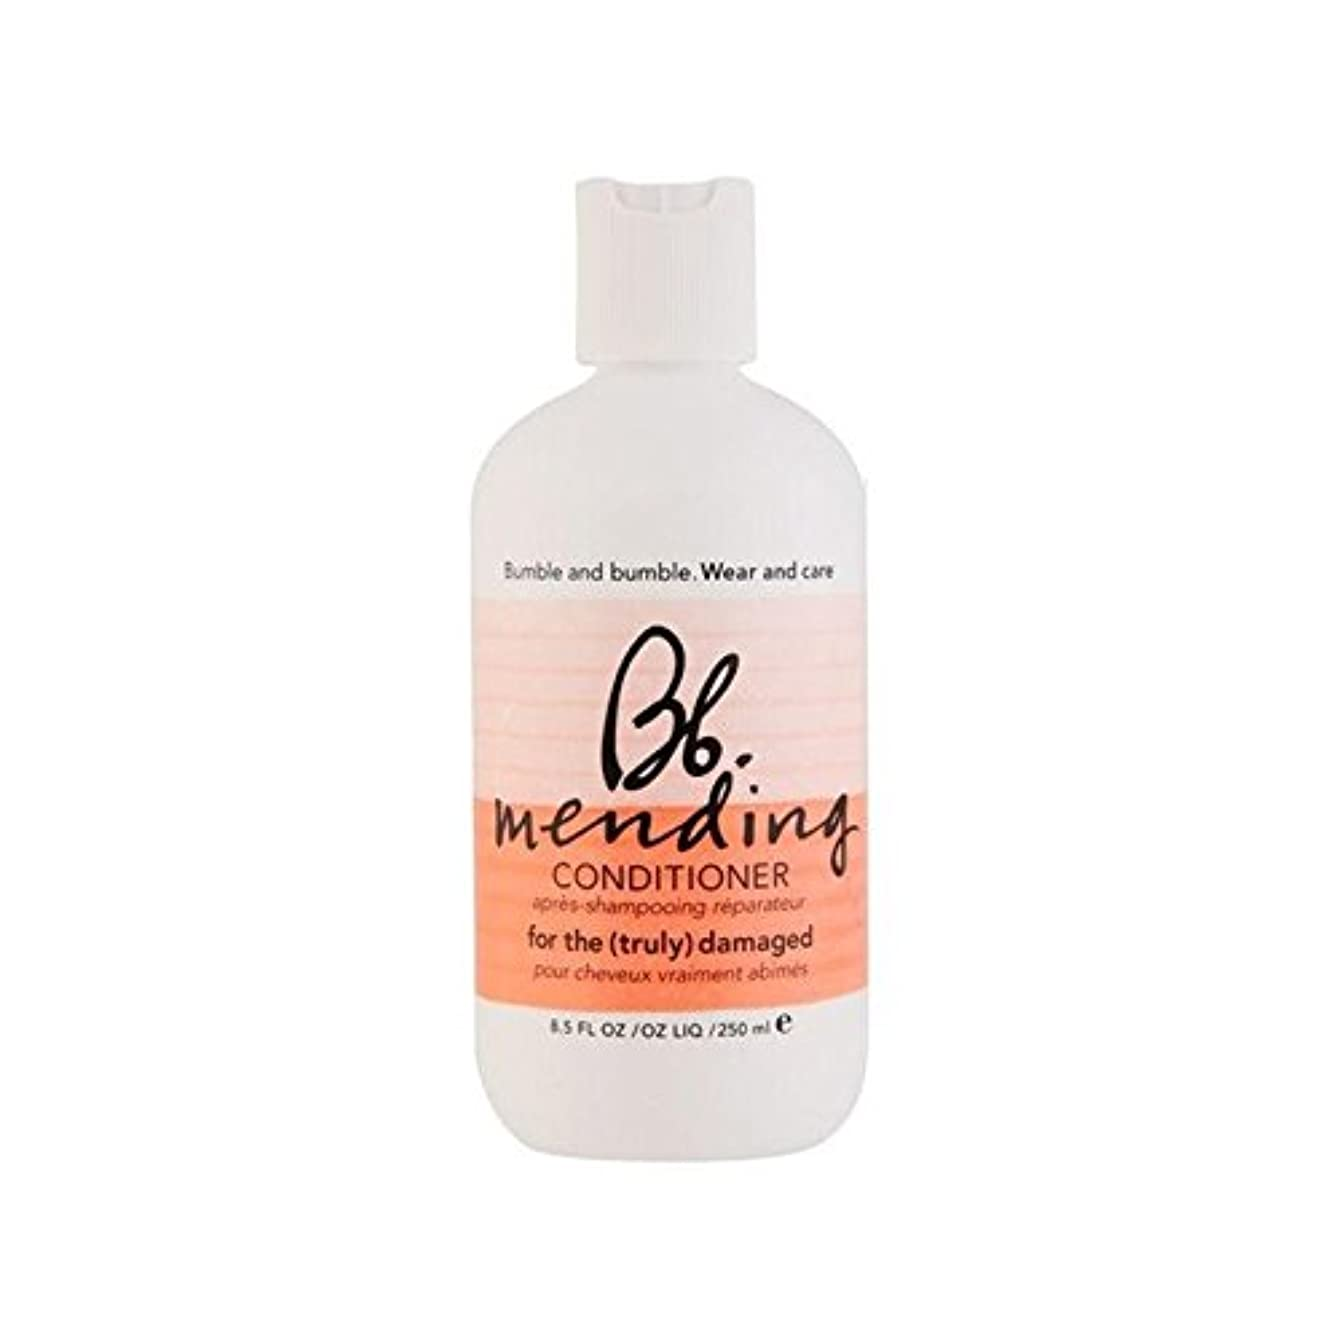 Bumble & Bumble Wear And Care Mending Conditioner (250ml) - 着るとコンディショナー(250ミリリットル)を補修ケア [並行輸入品]